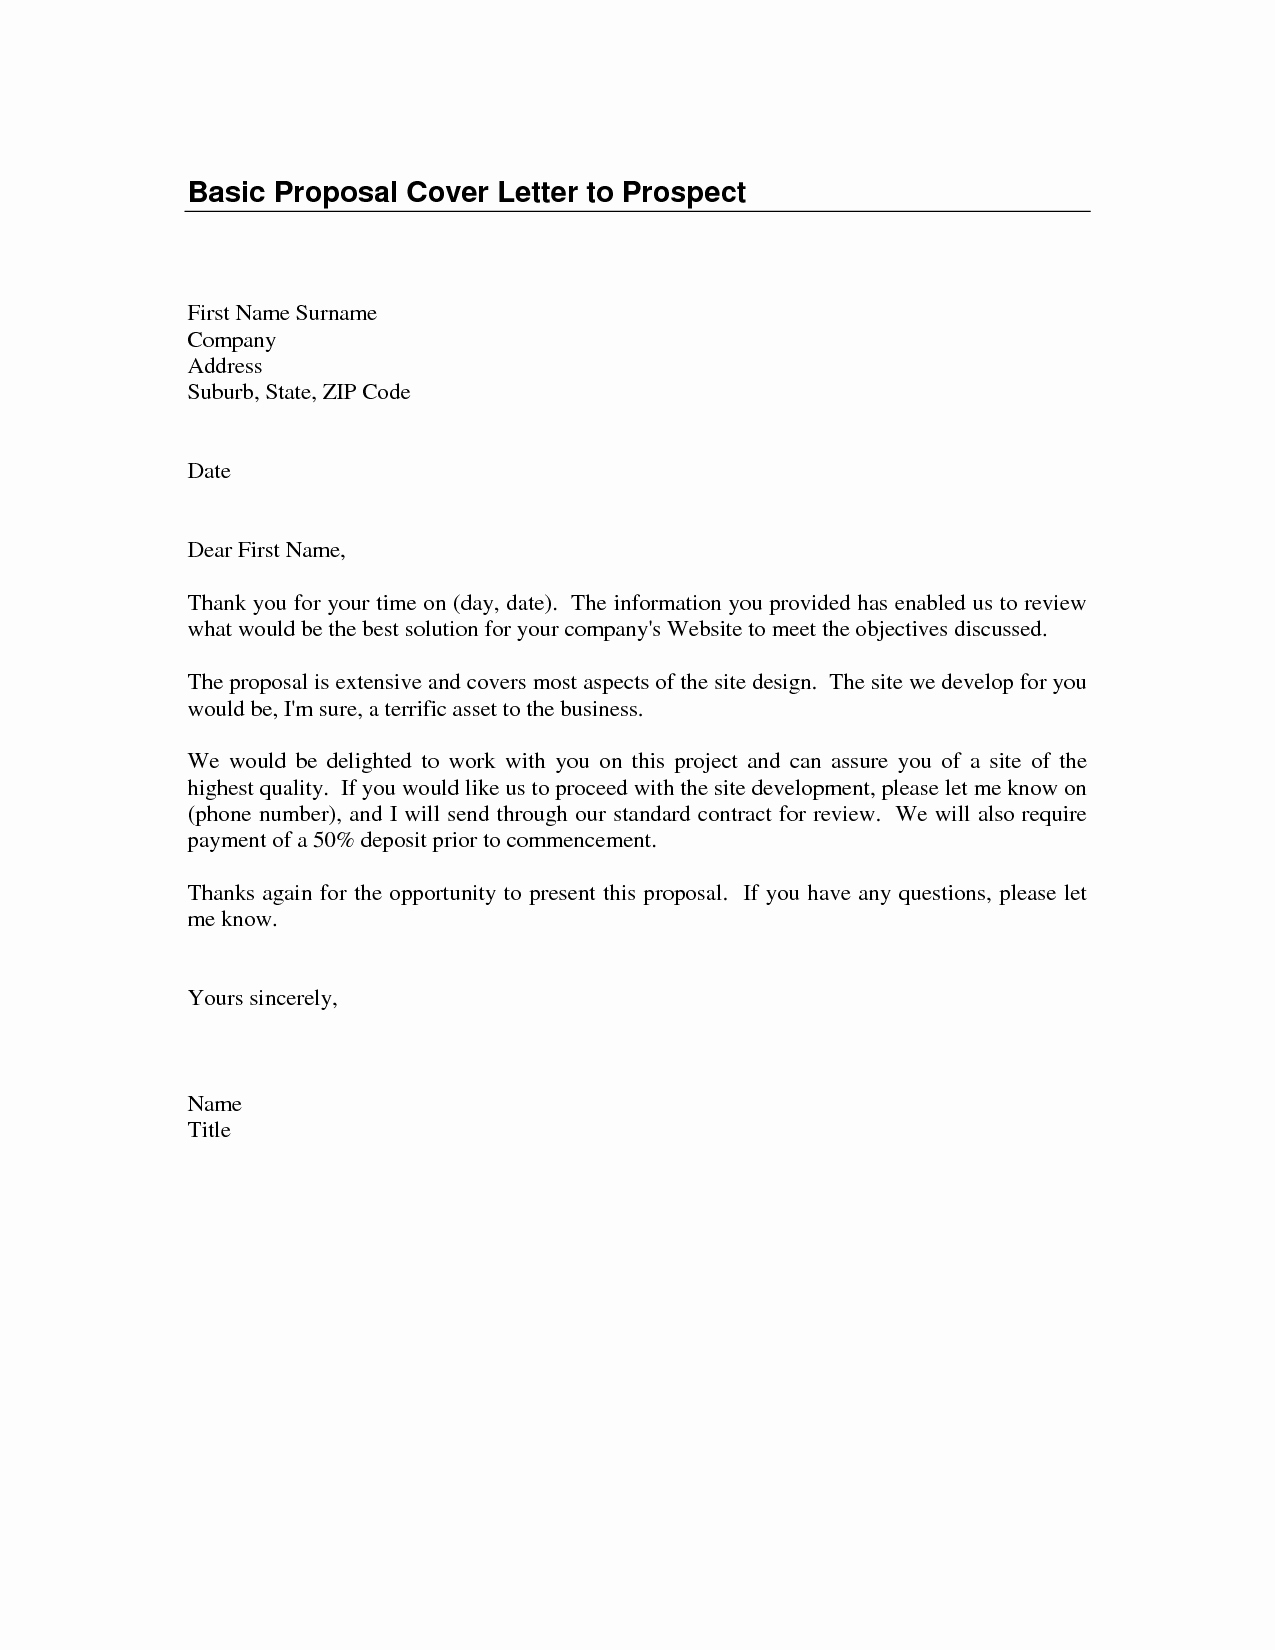 Example Of Basic Cover Letter Unique Cover Letter Basic format Best Template Collection